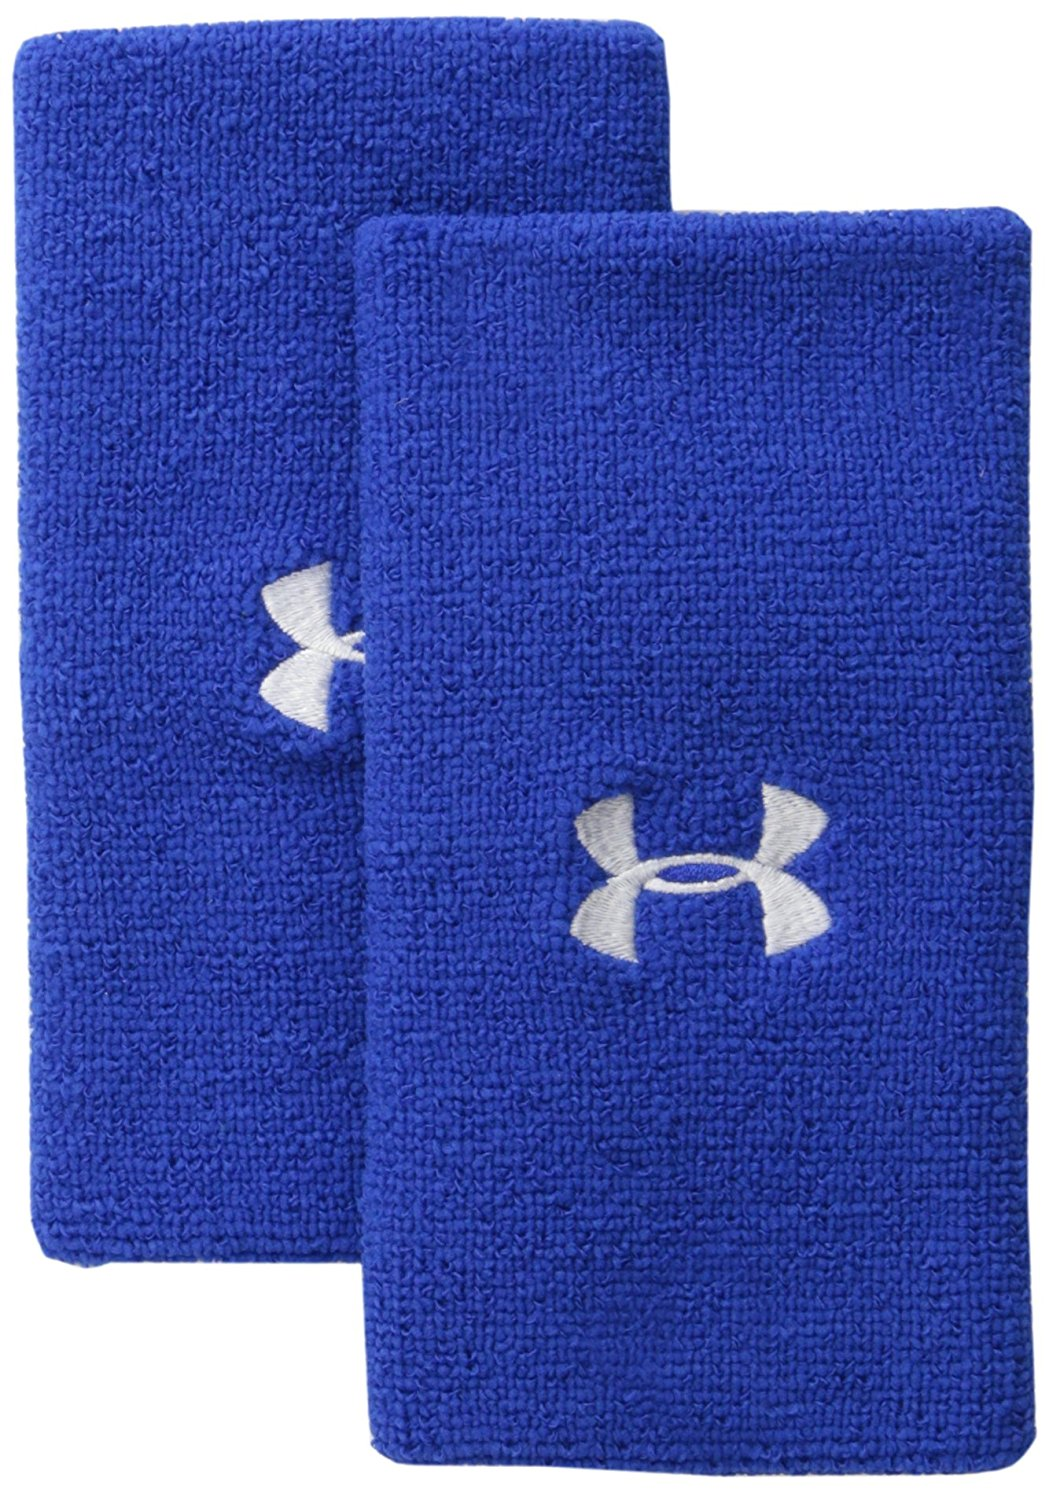 Best Arm Sweatbands